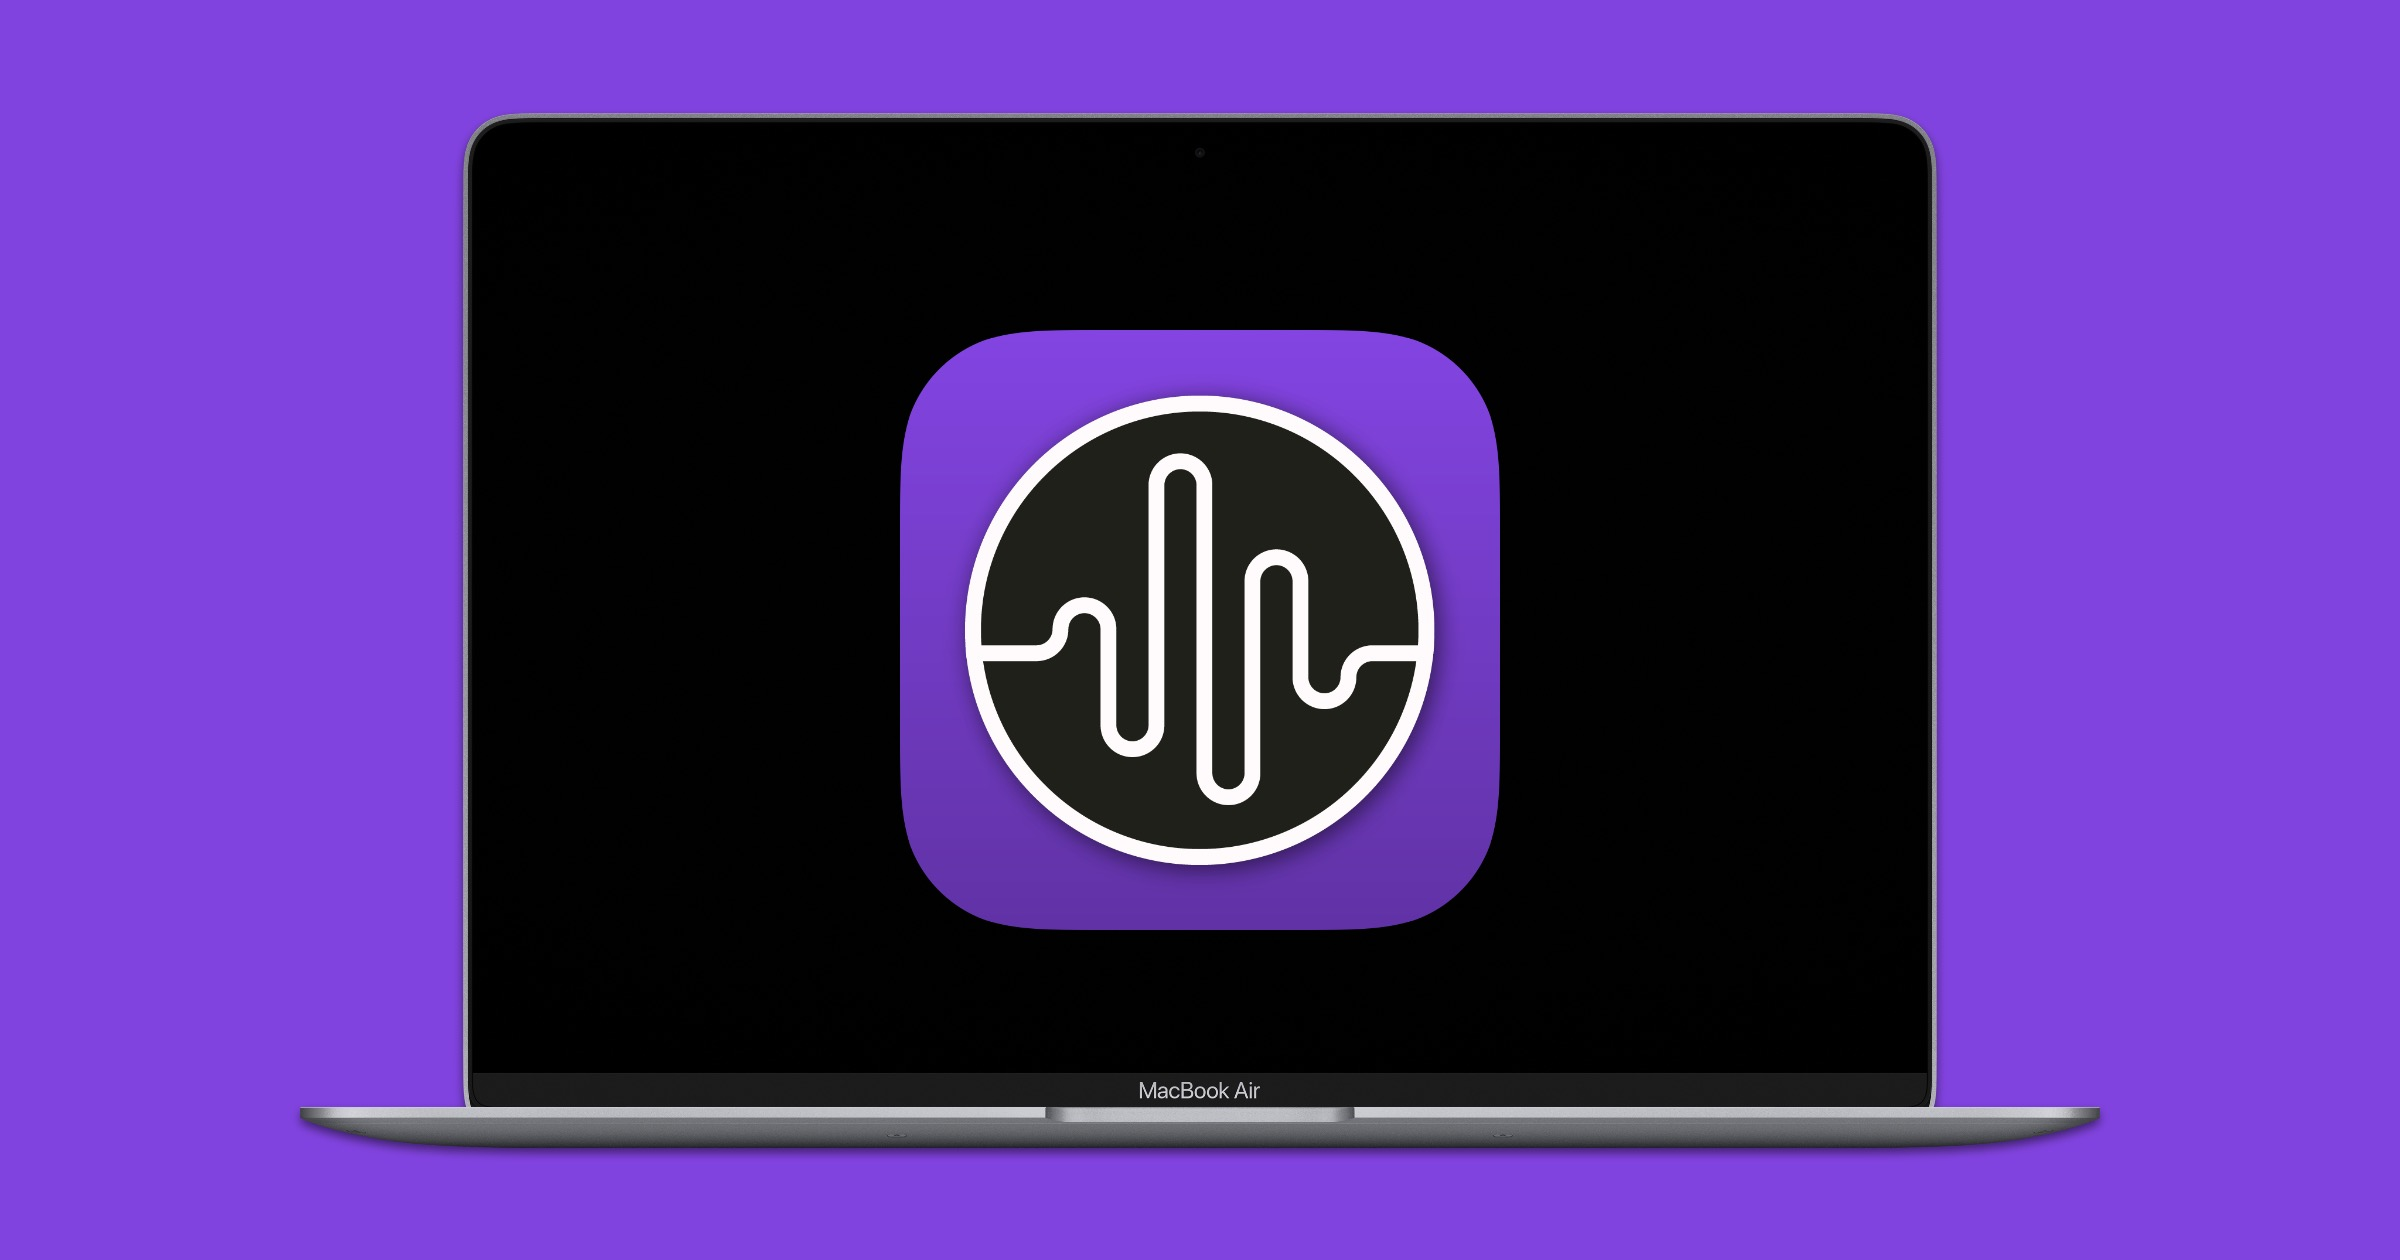 Ambient Noise App 'Dark Noise' Updated for M1 Macs